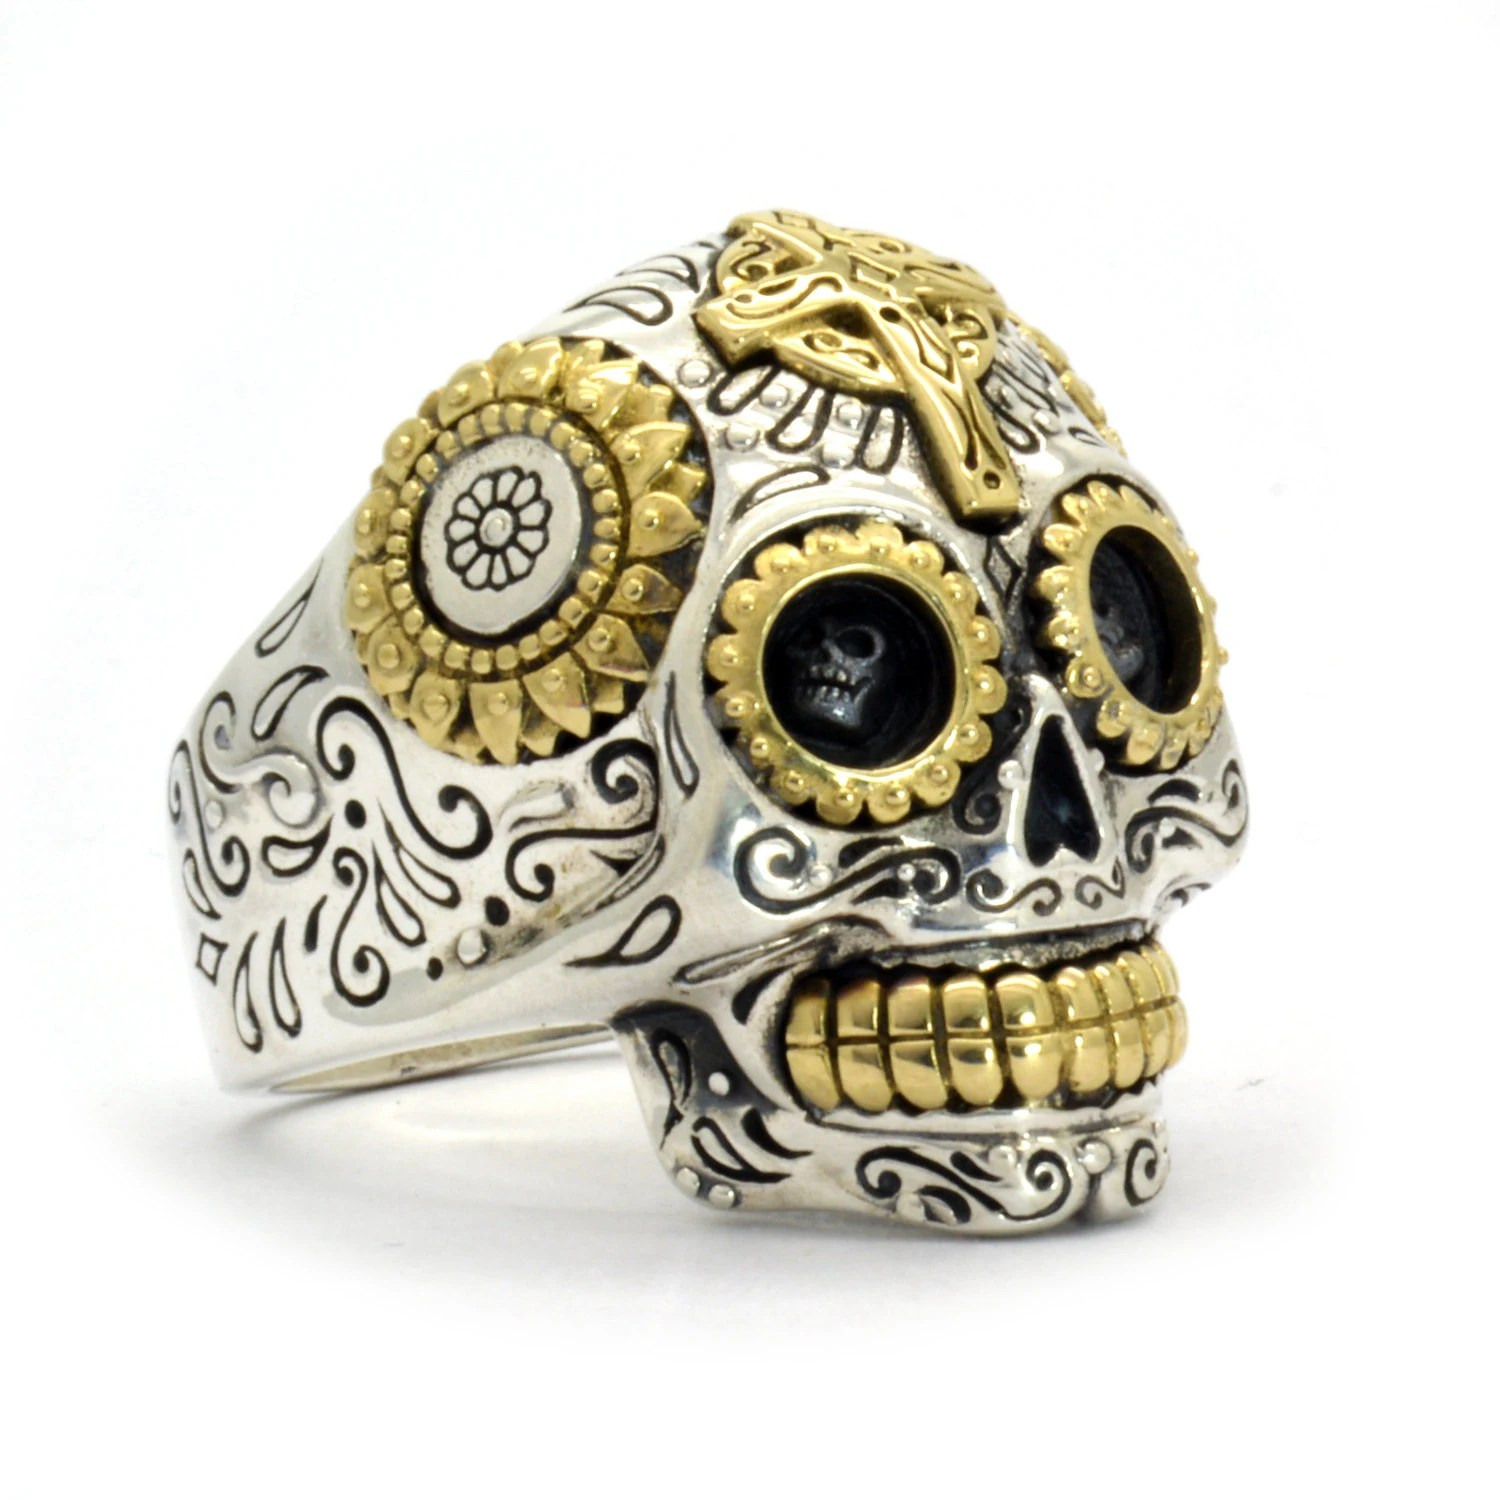 skull ring mens skull wedding rings Mexican Sugar Skull Ring Mens skull ring jewelry Mexican Skull sterling cr neo sugar skull ring biker skull crane t te de mort